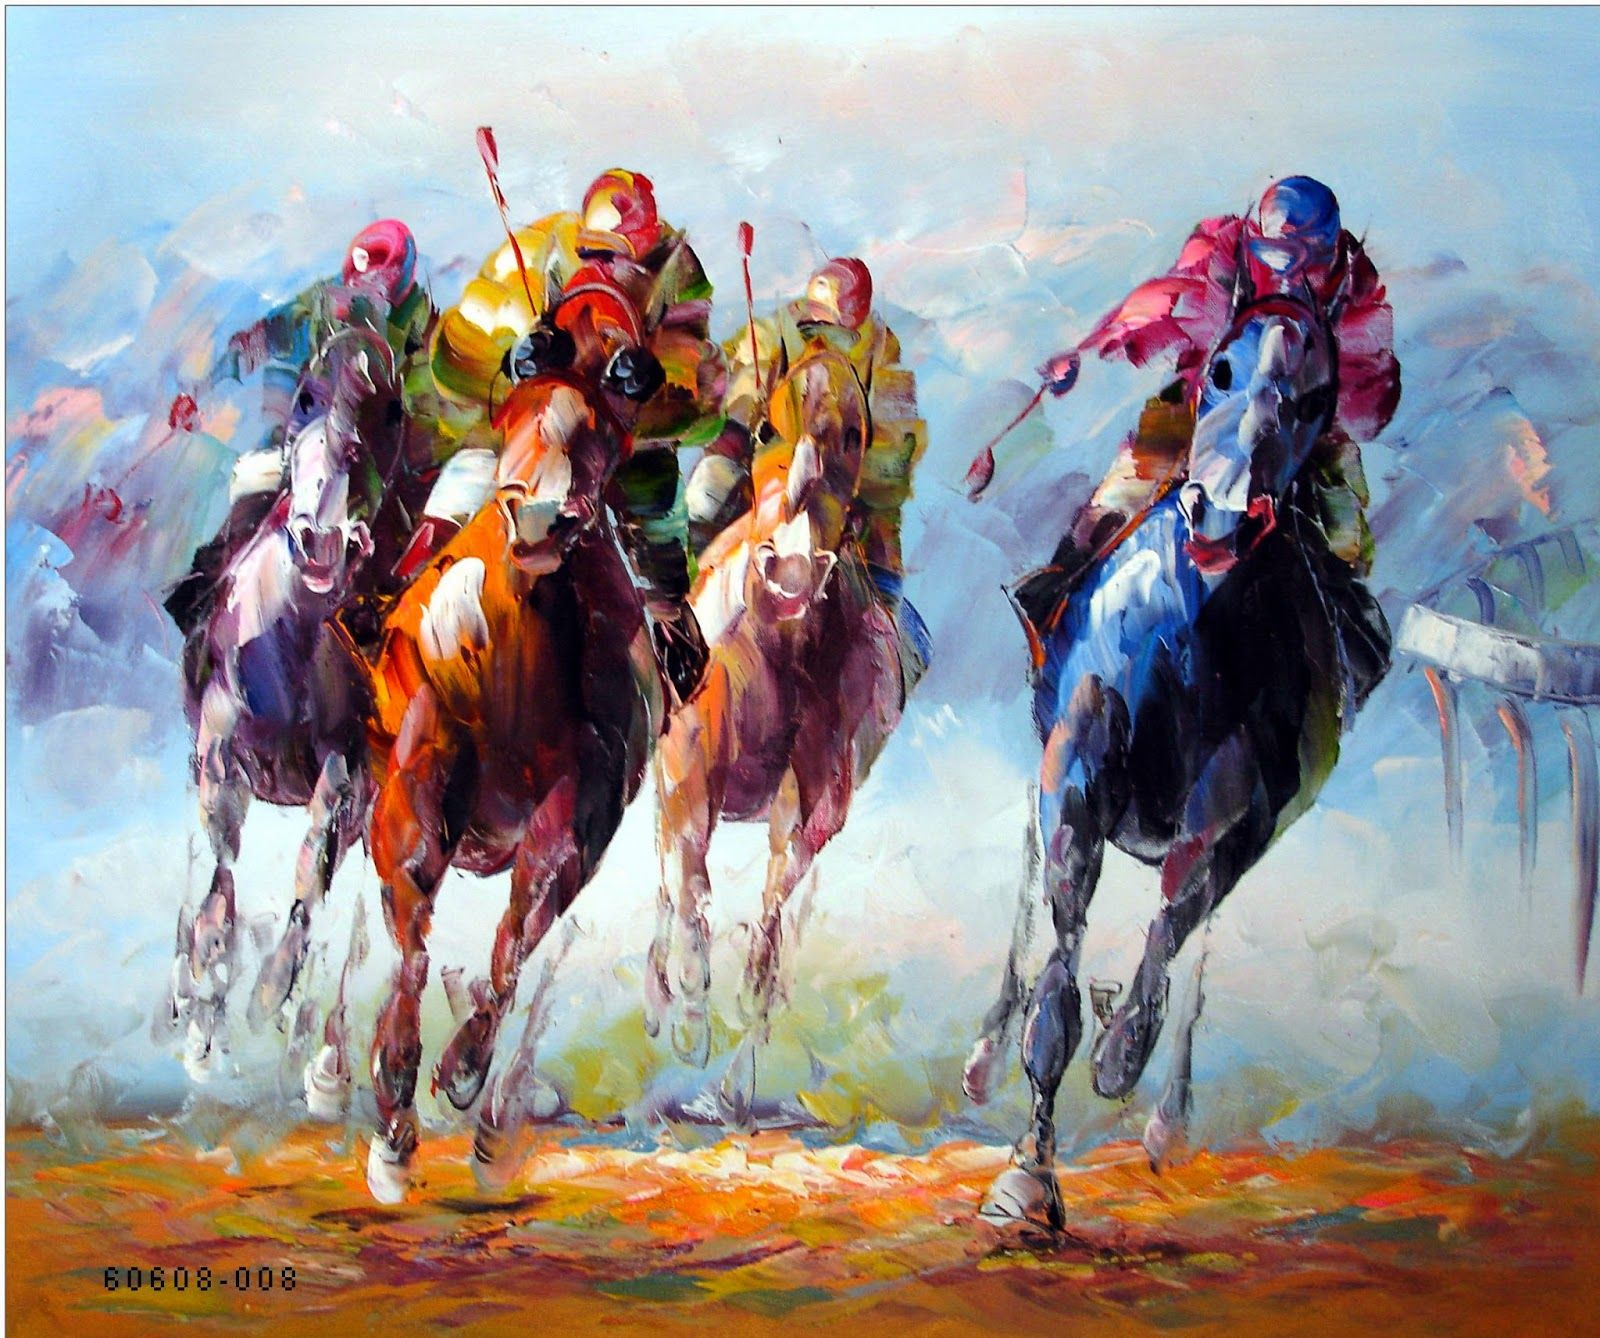 All Our Oil Paintings Are 100 Hand Painted By Talented Artists Using High Quality Paints And Only The Best Linen Canvas